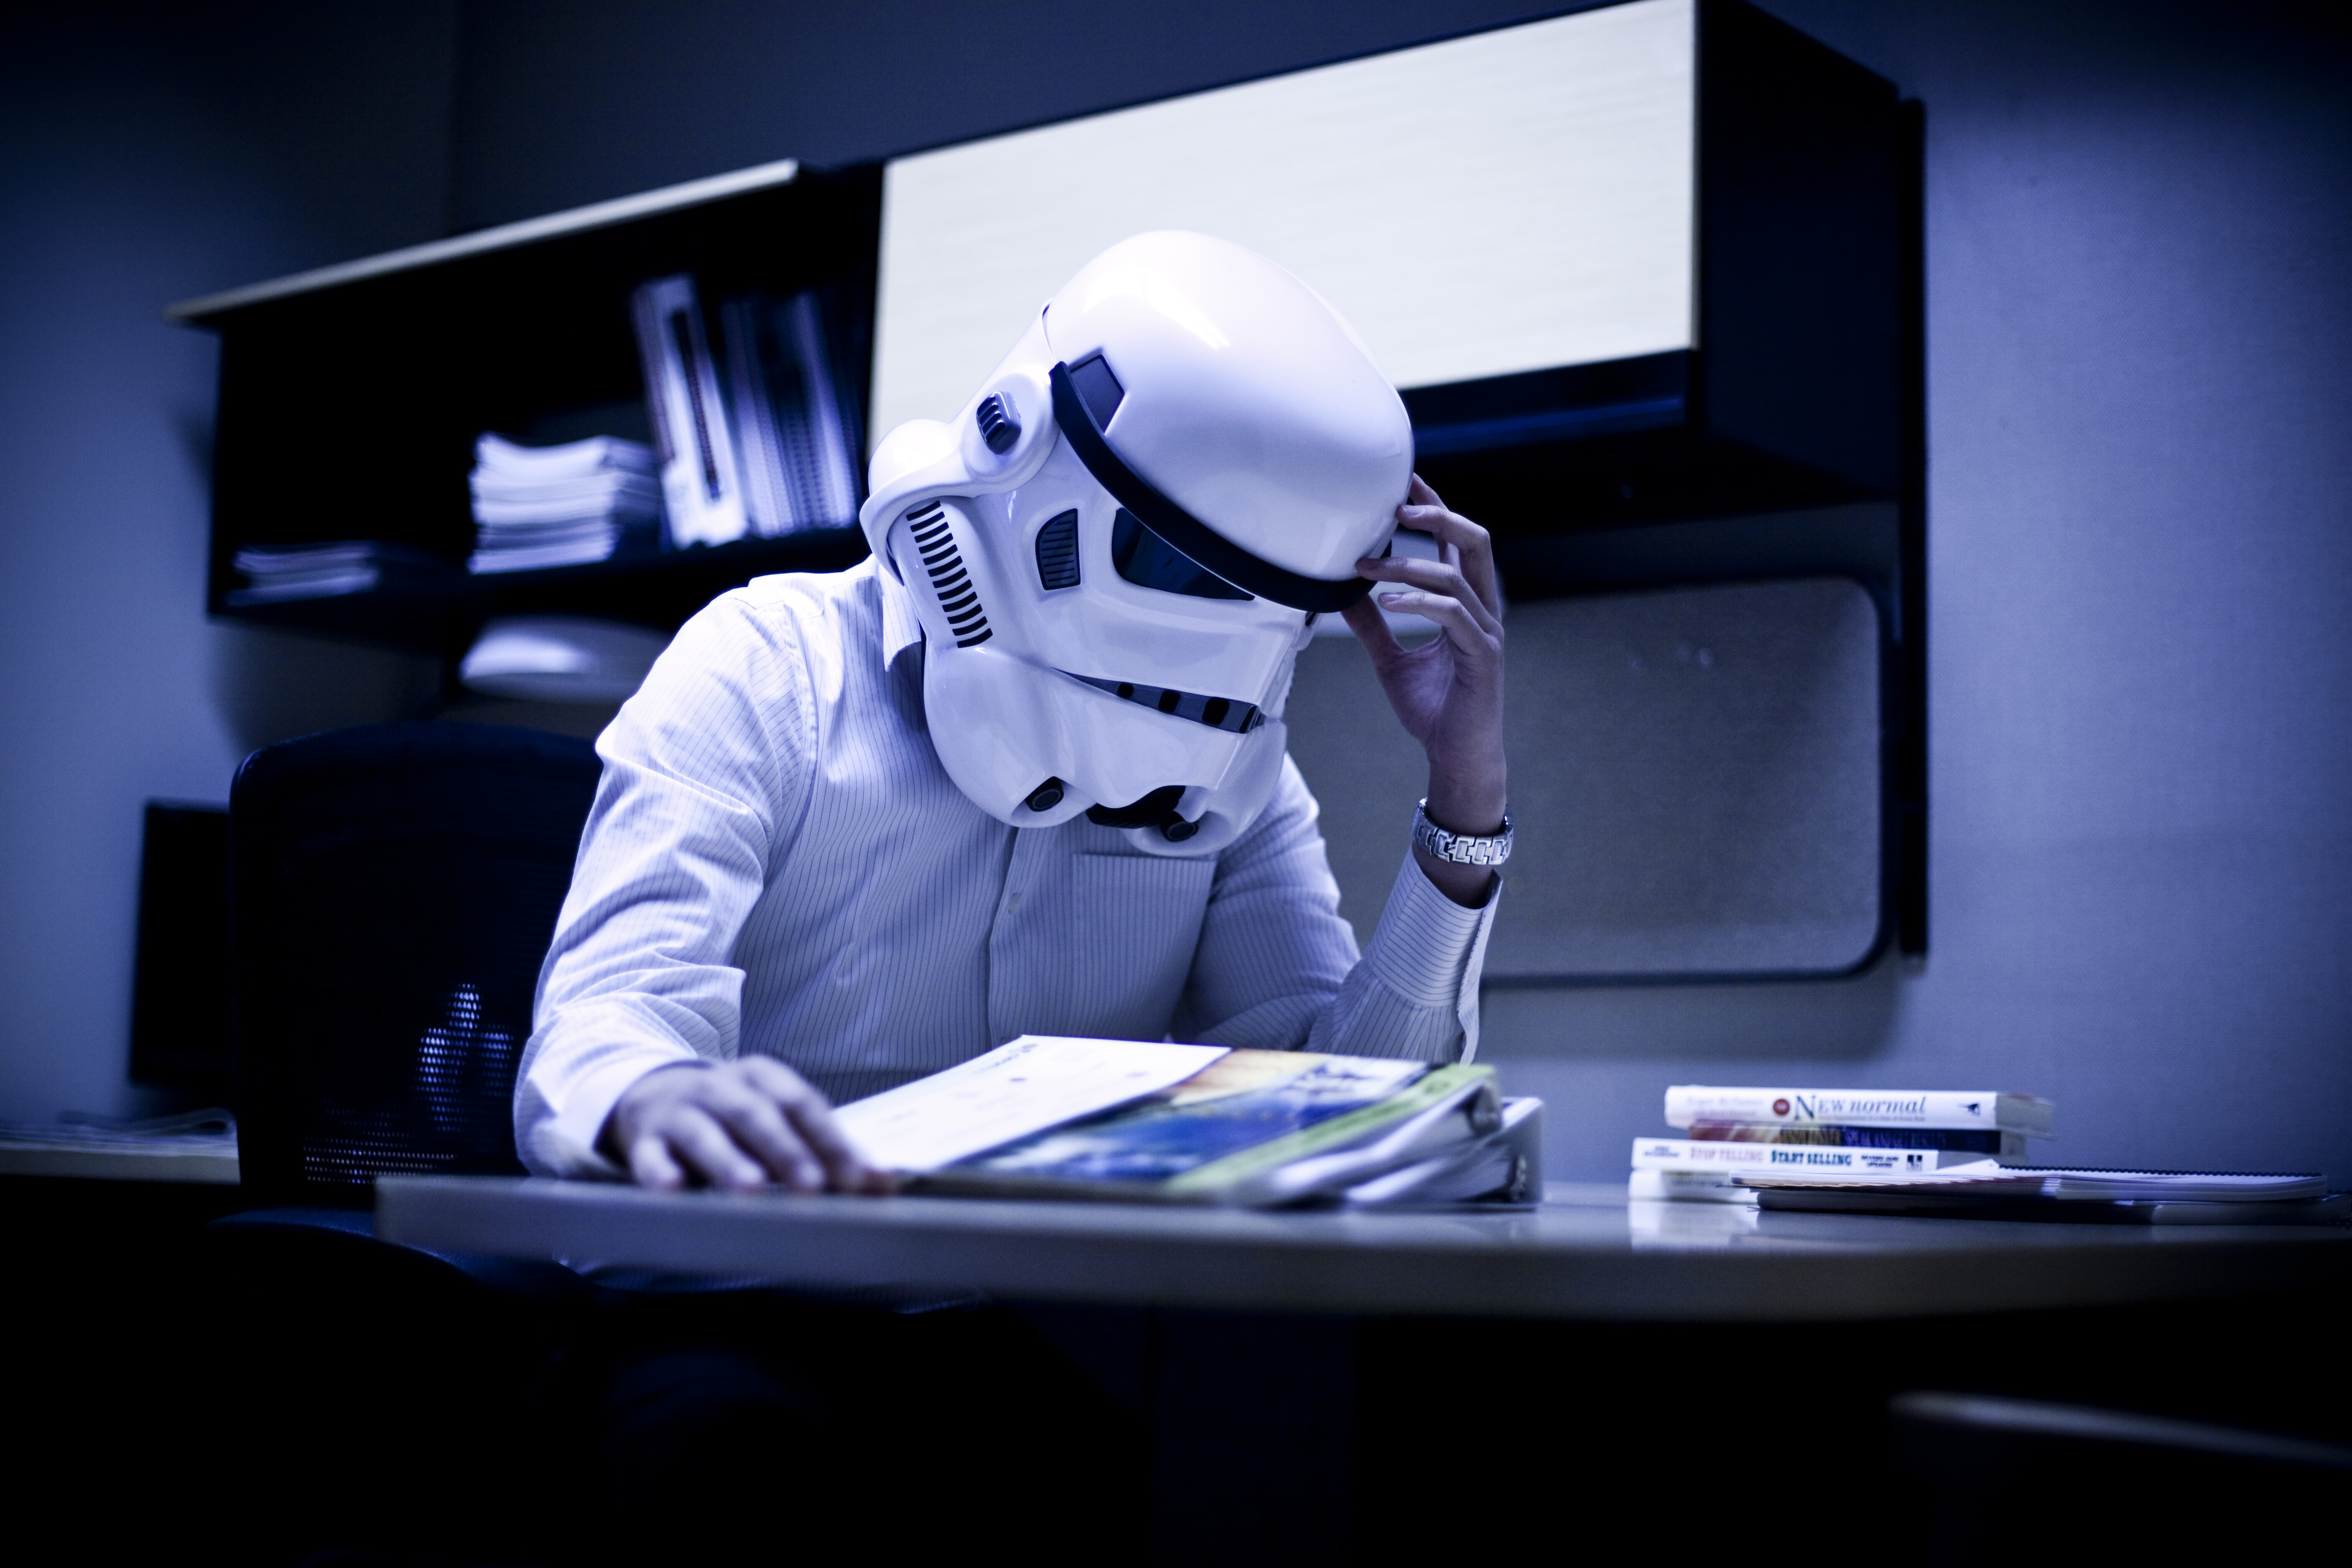 Darth Vader at Work